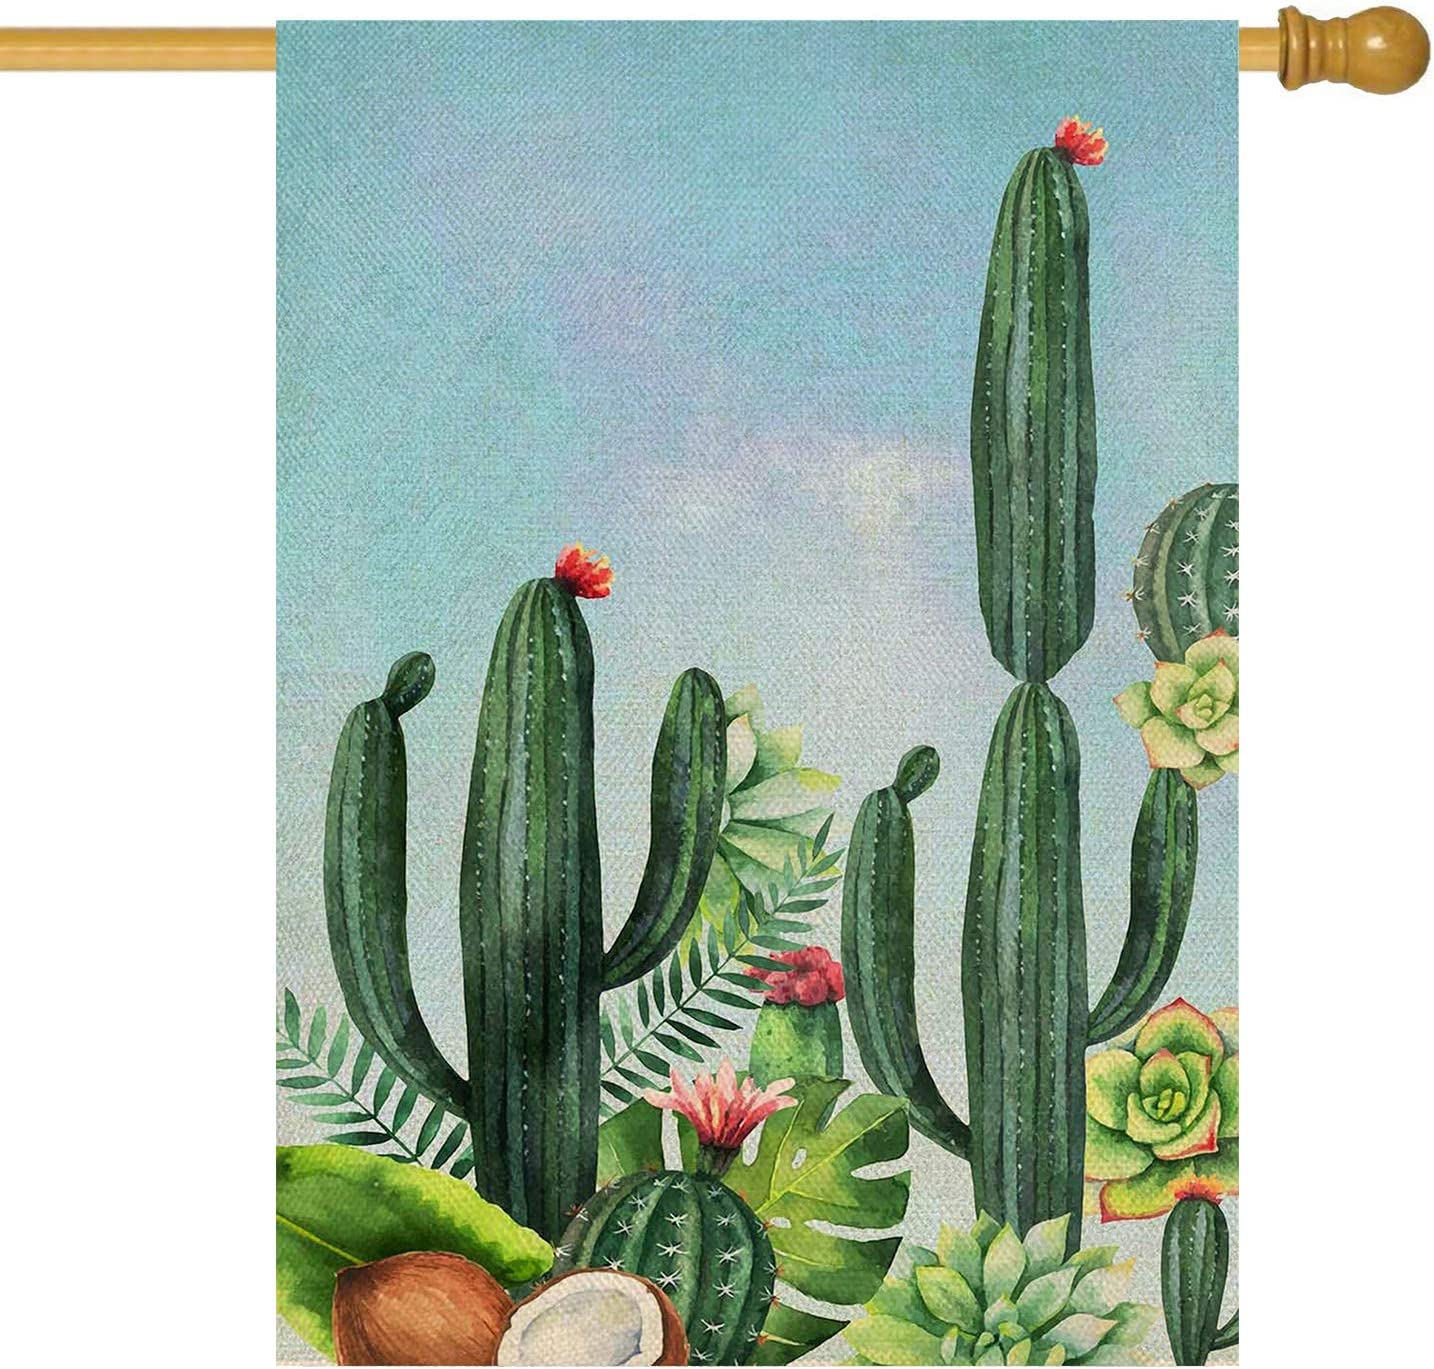 ORTIGIA Welcome Cactus Garden House Flag Double Sided Home Decorative,Succulent Yard Decoration Seasonal Outdoor Flag 28 x 40inch for Spring Summer